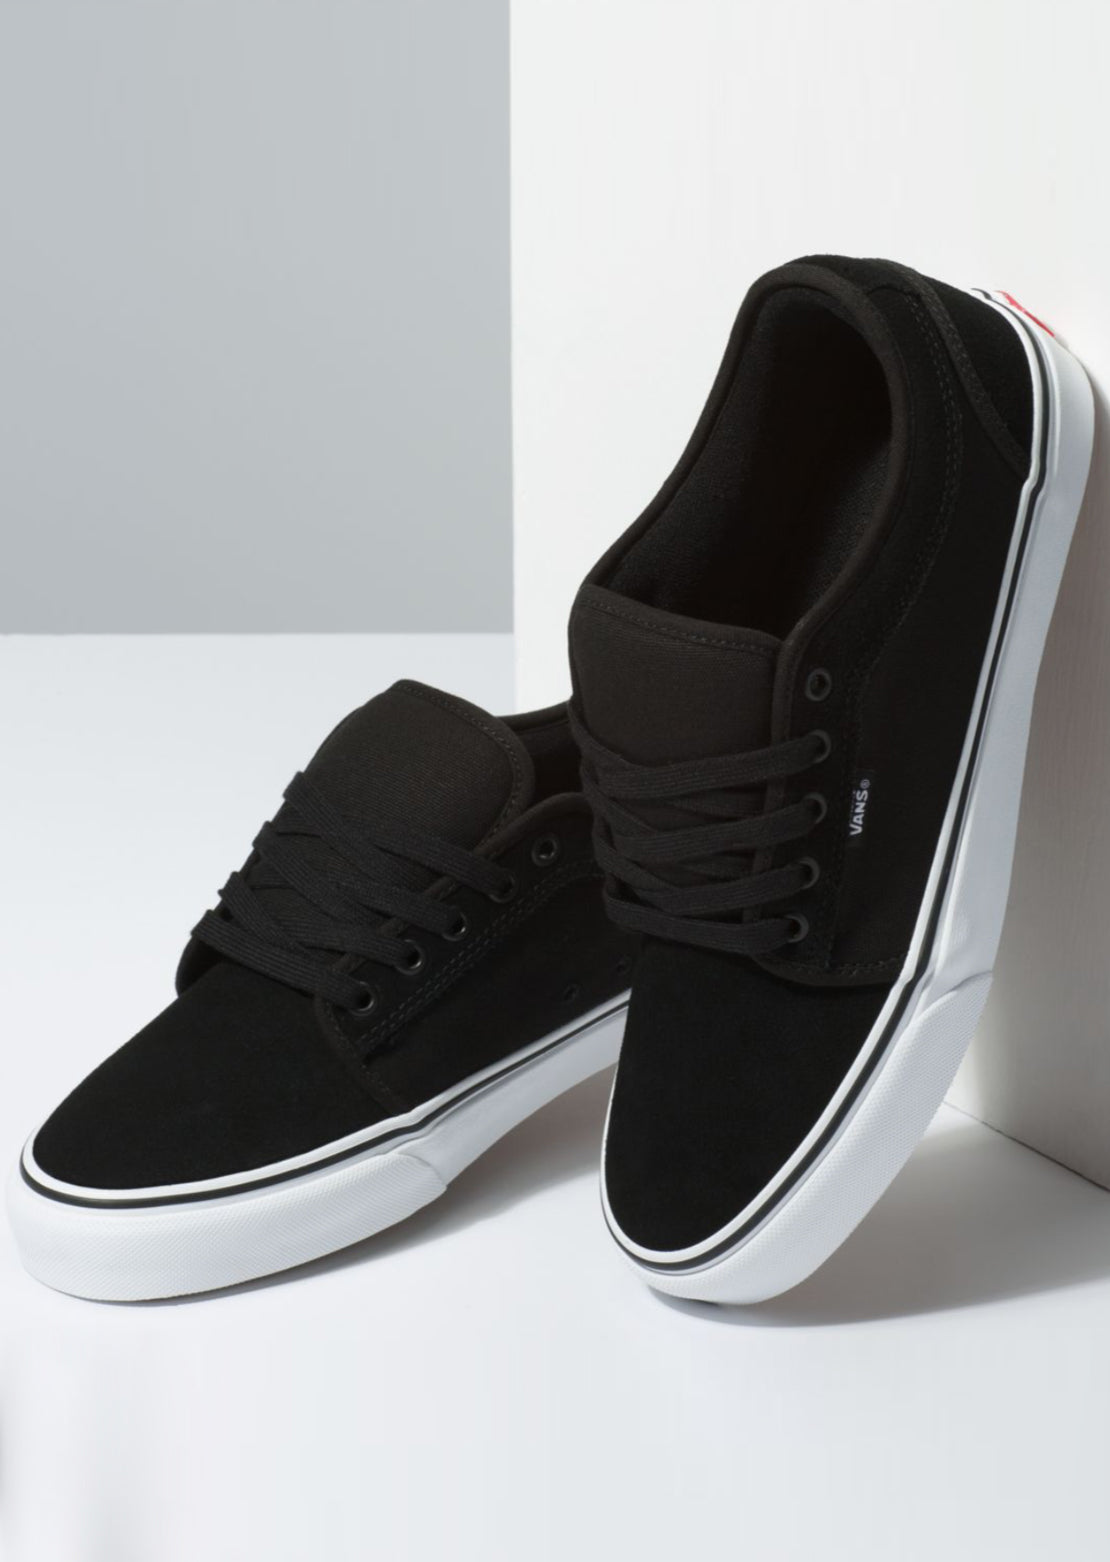 Vans Men's Suede Chukka Low Shoes Black/True White